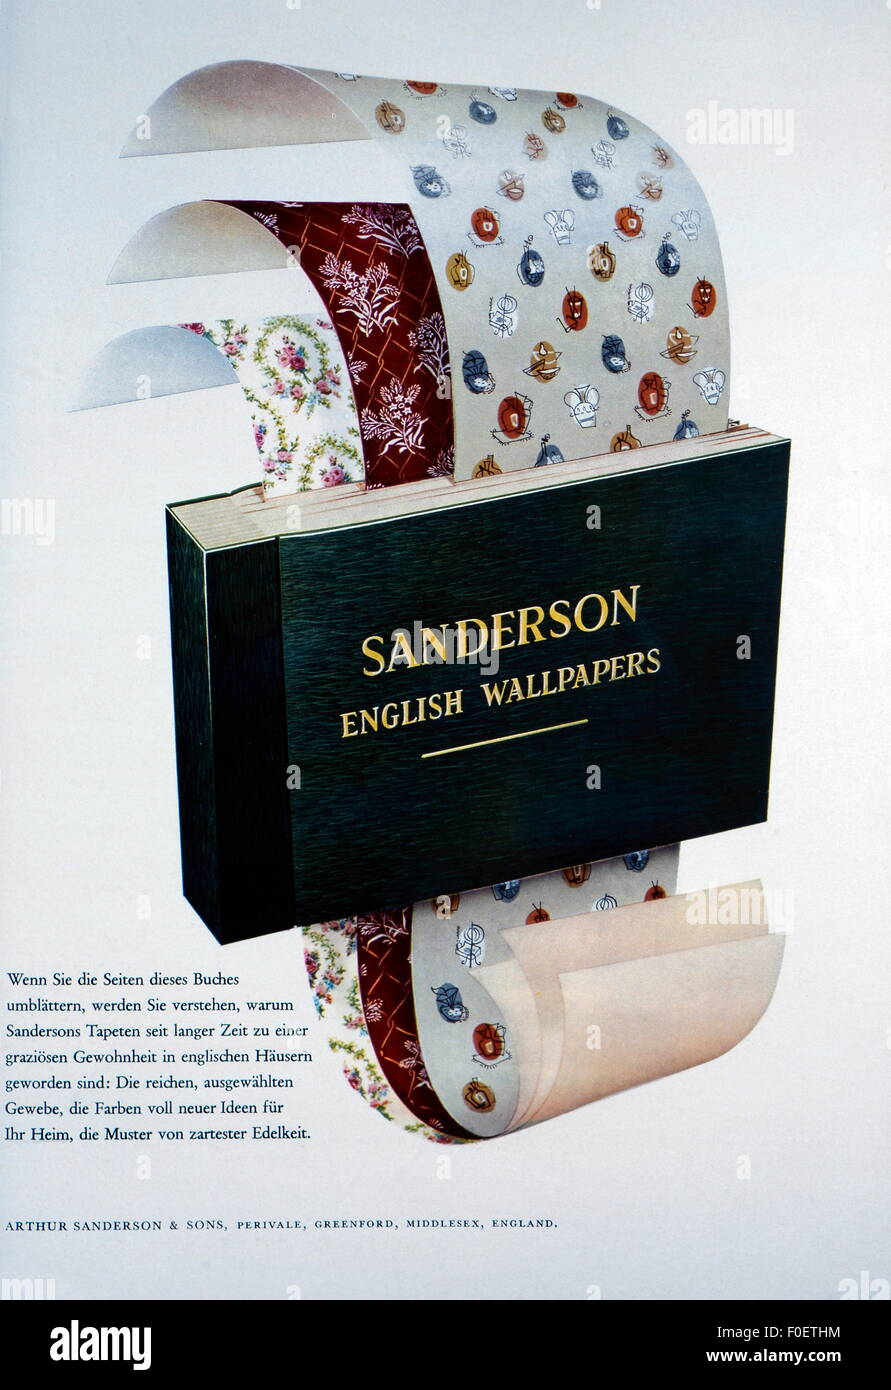 advertising, furnishings, wallpaper, advertisement for 'Sanderson English Wallpapers', out of: 'Film - Stock Image